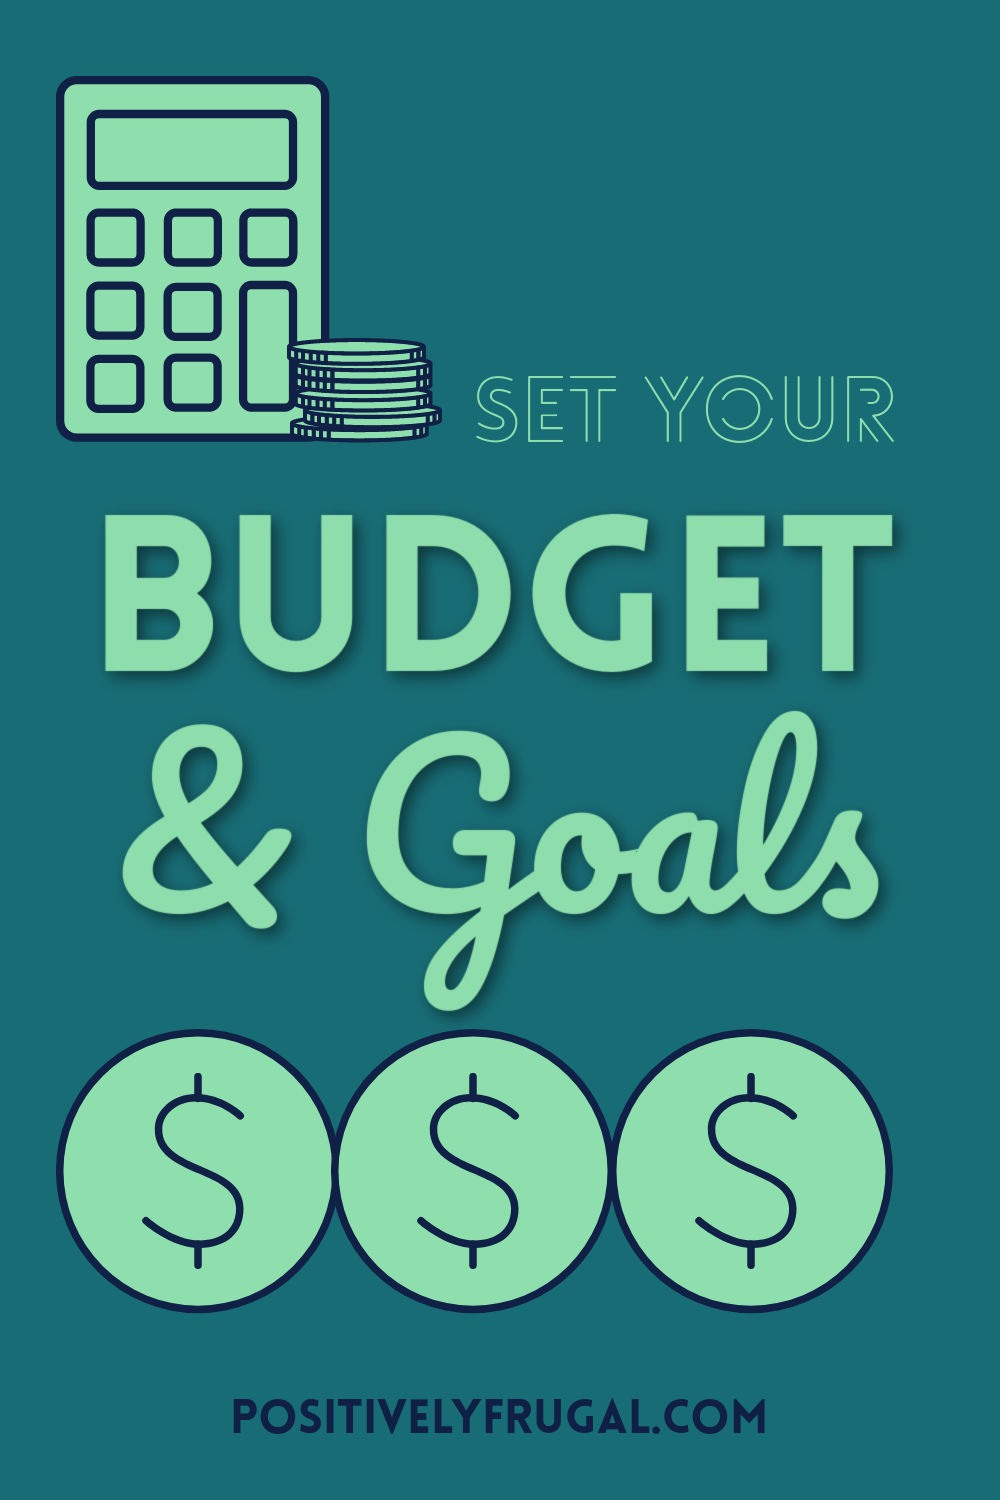 Set Your Budget and Goals by PositivelyFrugal.com